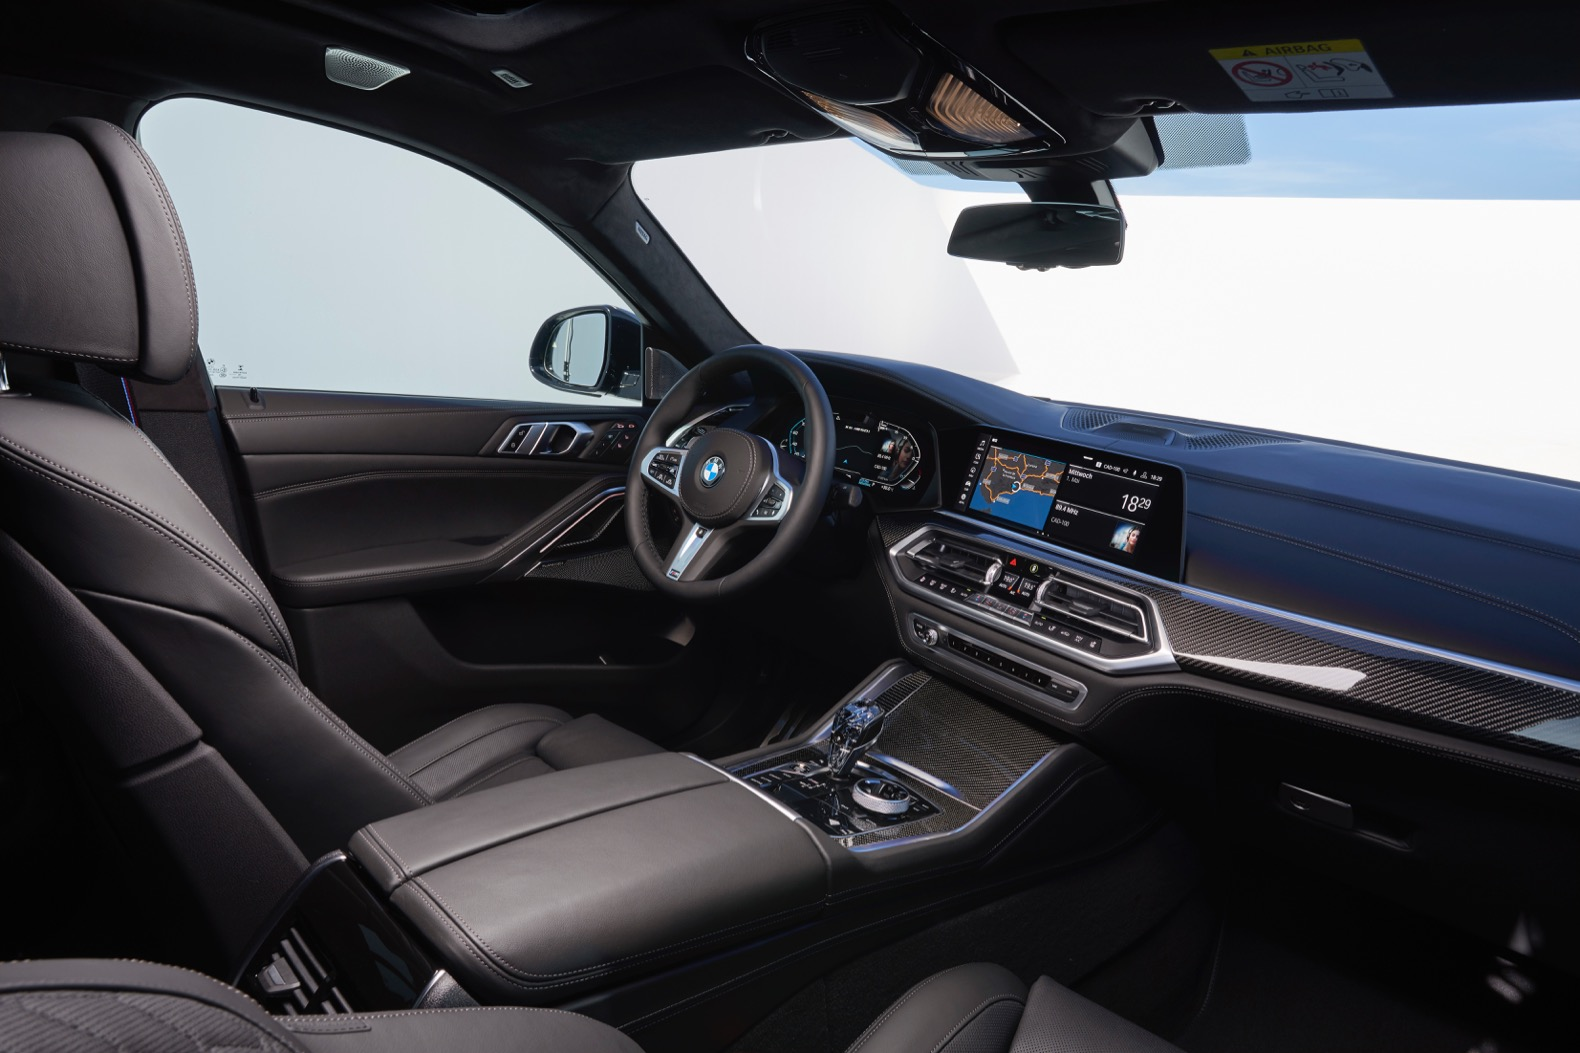 2020 BMW X6 debuts with an illuminated grille | The Torque Report